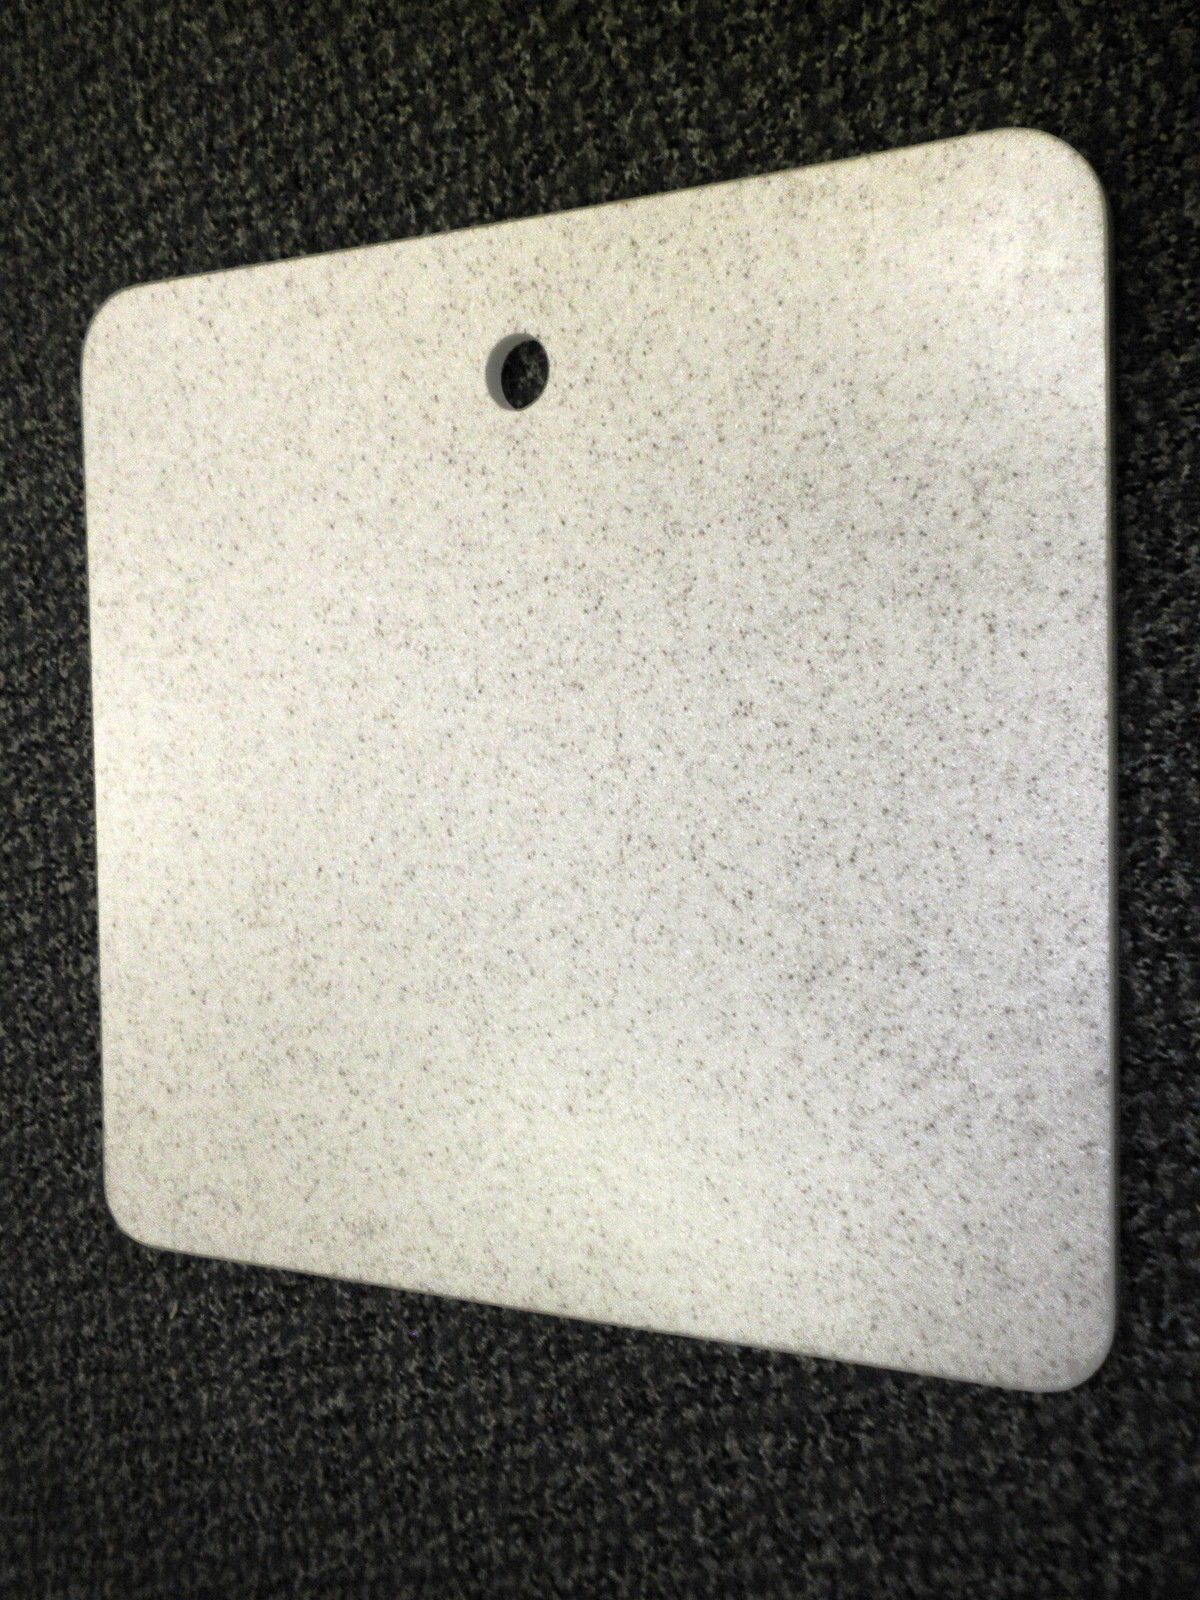 "RV Aurora Speckled Corian Sink Cover Size: 14 15/16"" X 15 7/8"" X 3/8"""